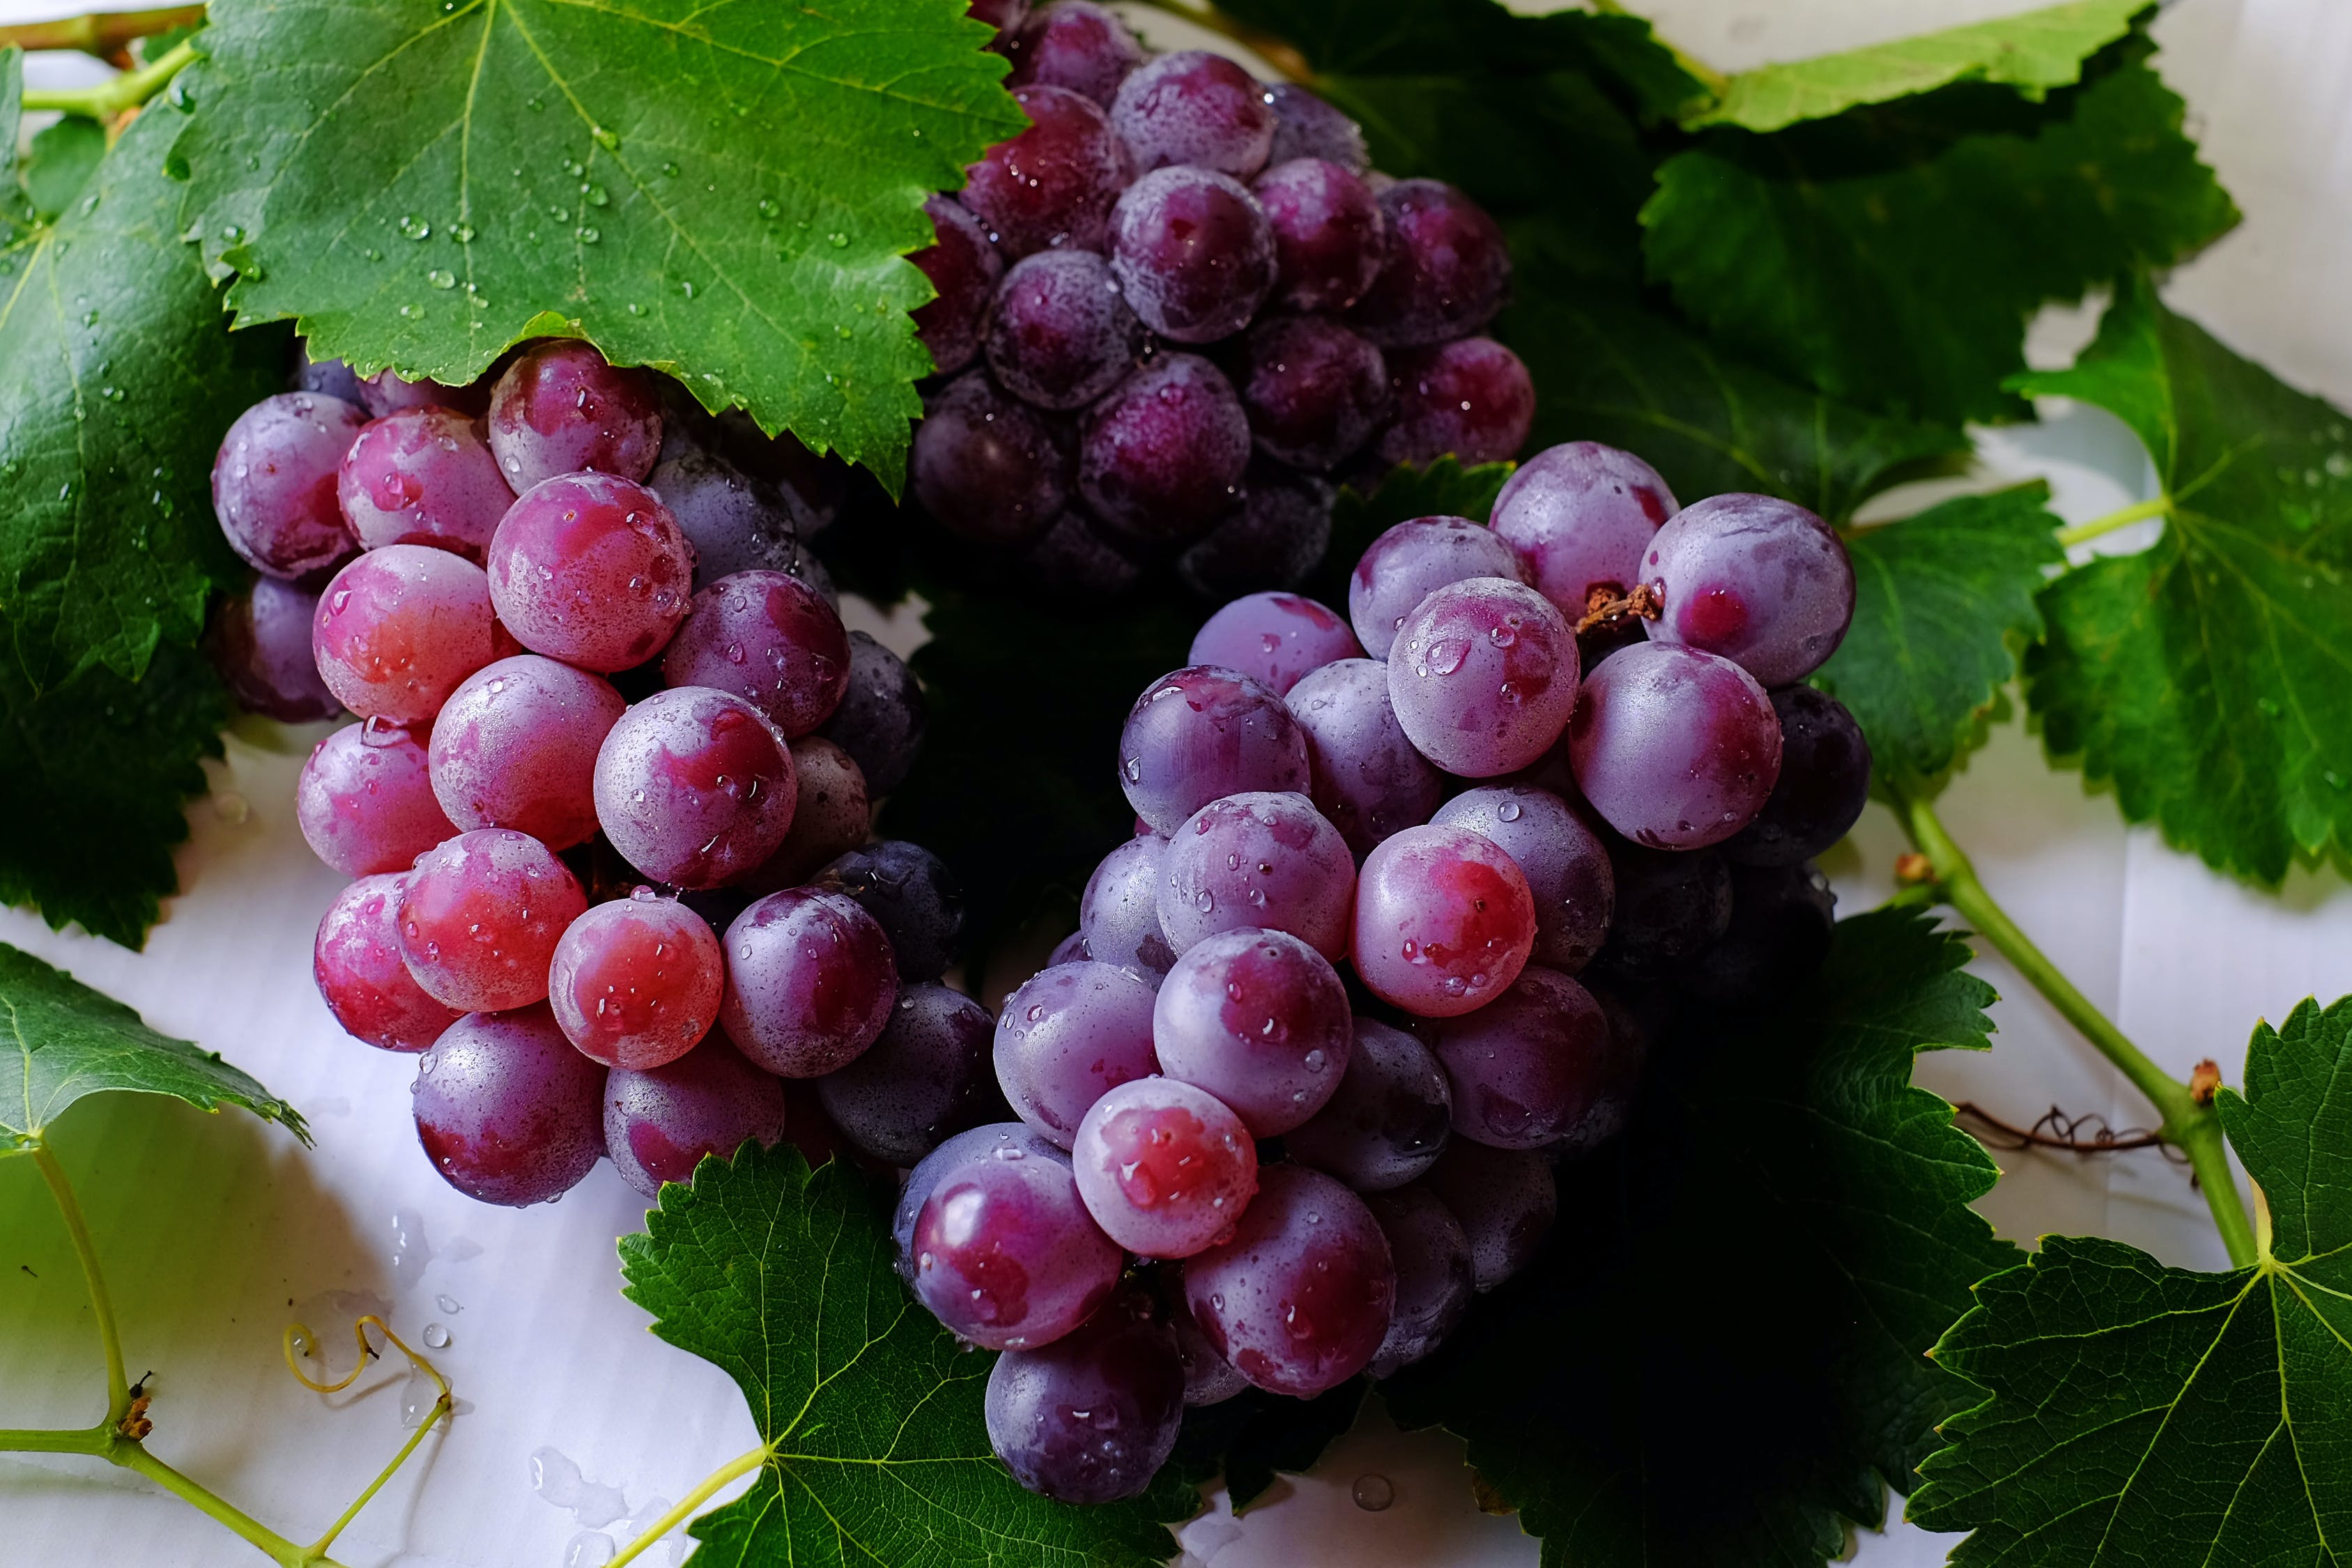 bunches of redish-purple grapes